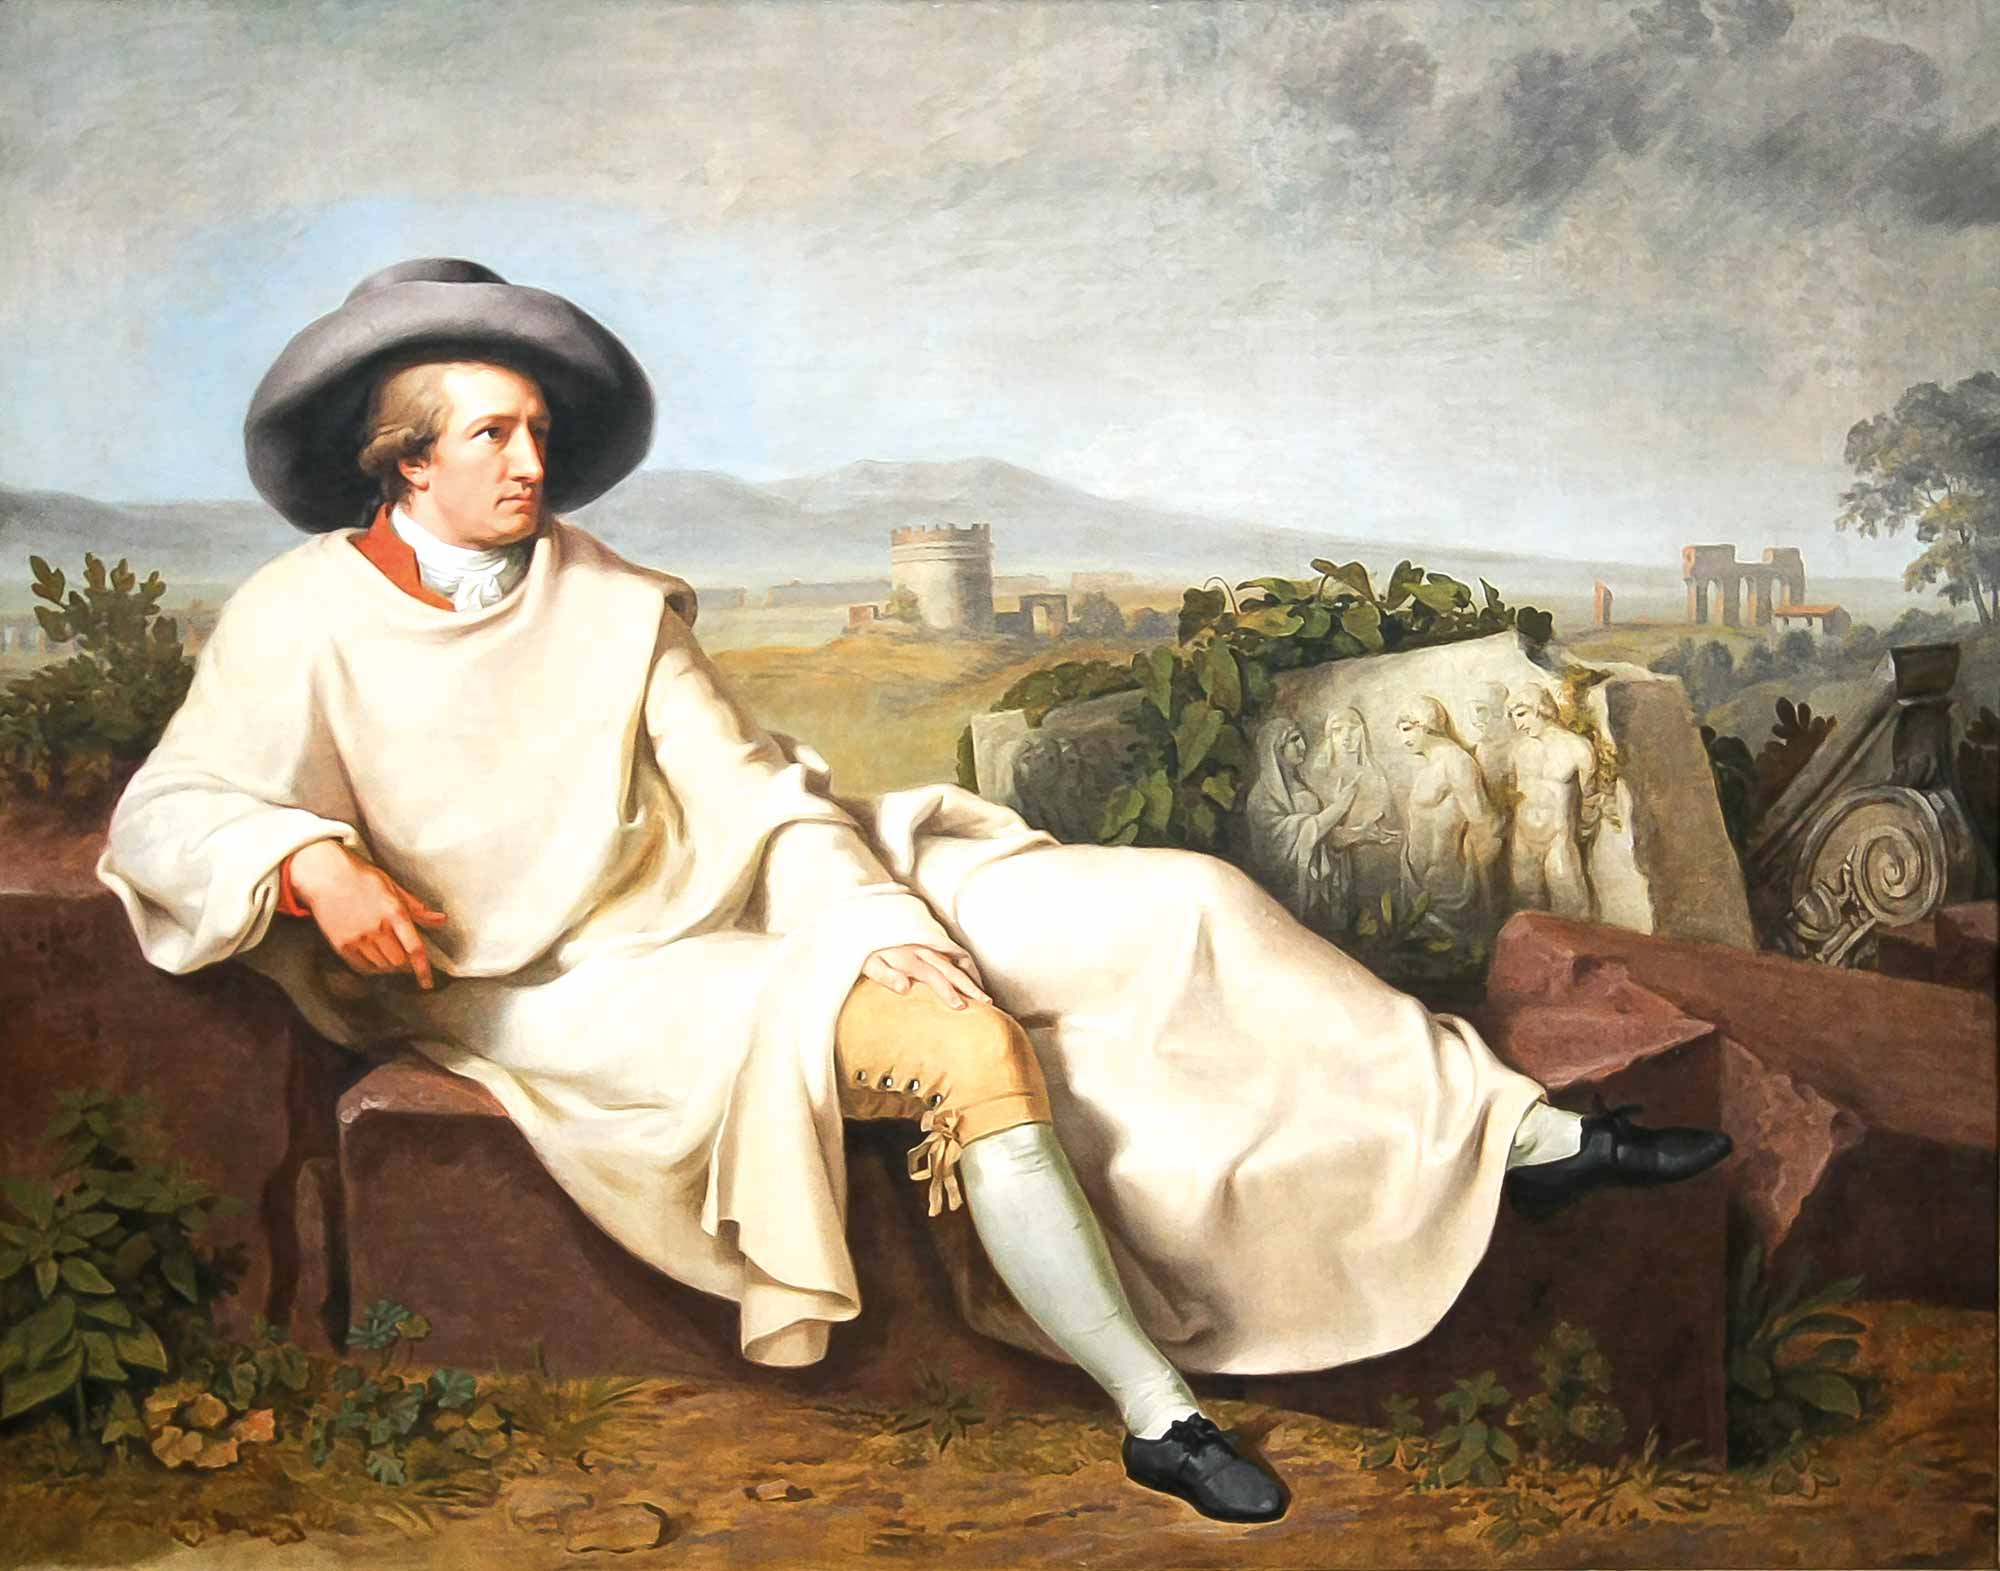 Johann Wolfgang van Goethe portraita founder of morphology which helped develop this tool for dental prosthetics